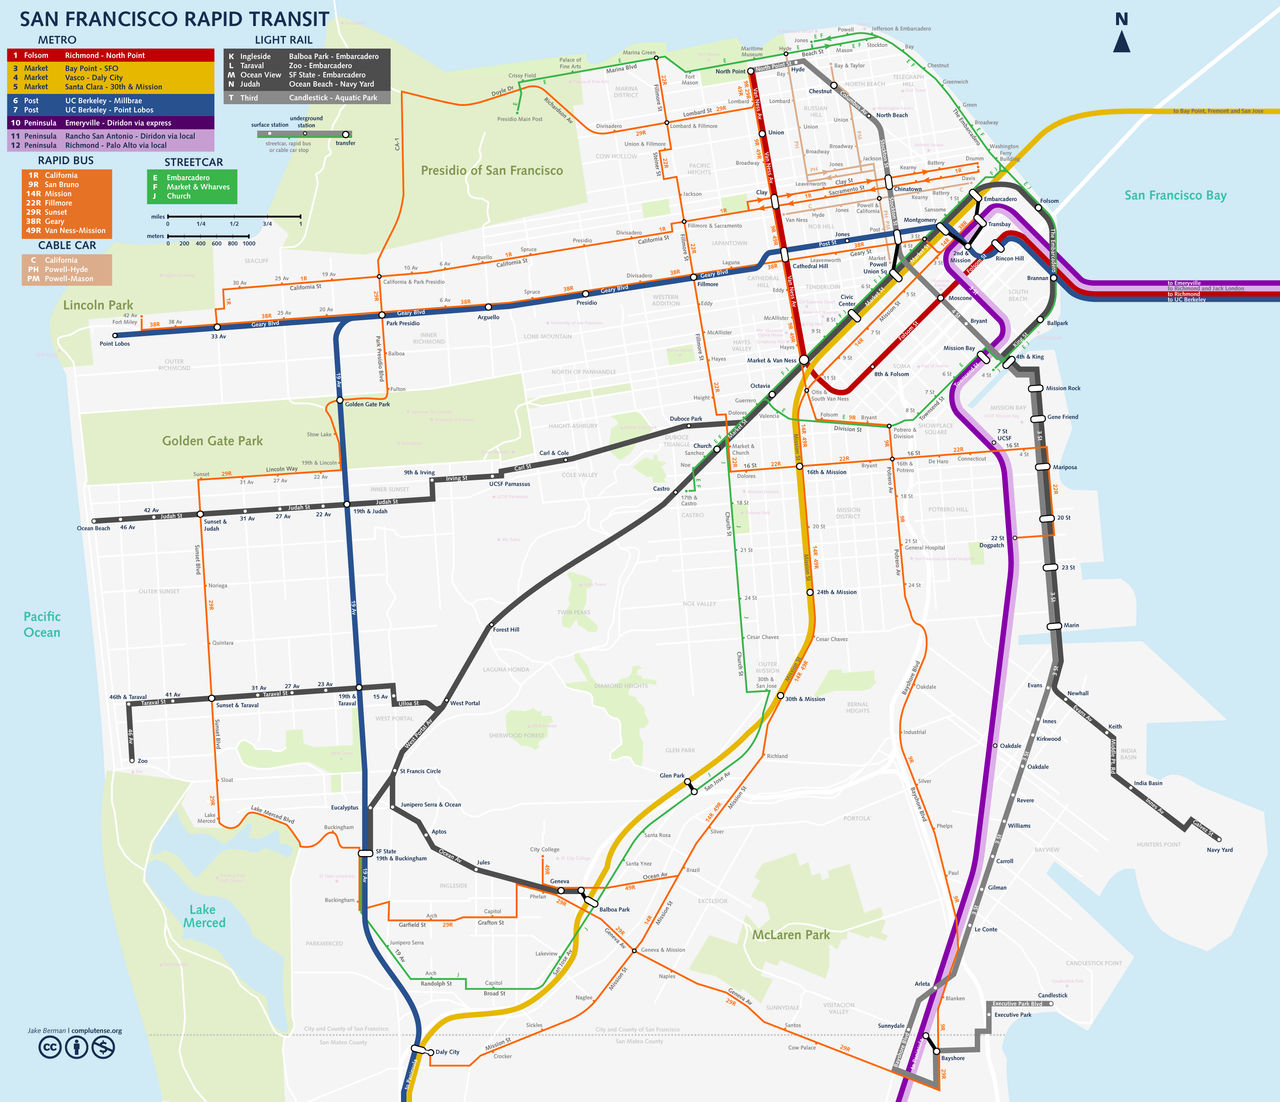 streetcar san francisco map San Francisco Streetcar Map By Qweqwe321 On Deviantart